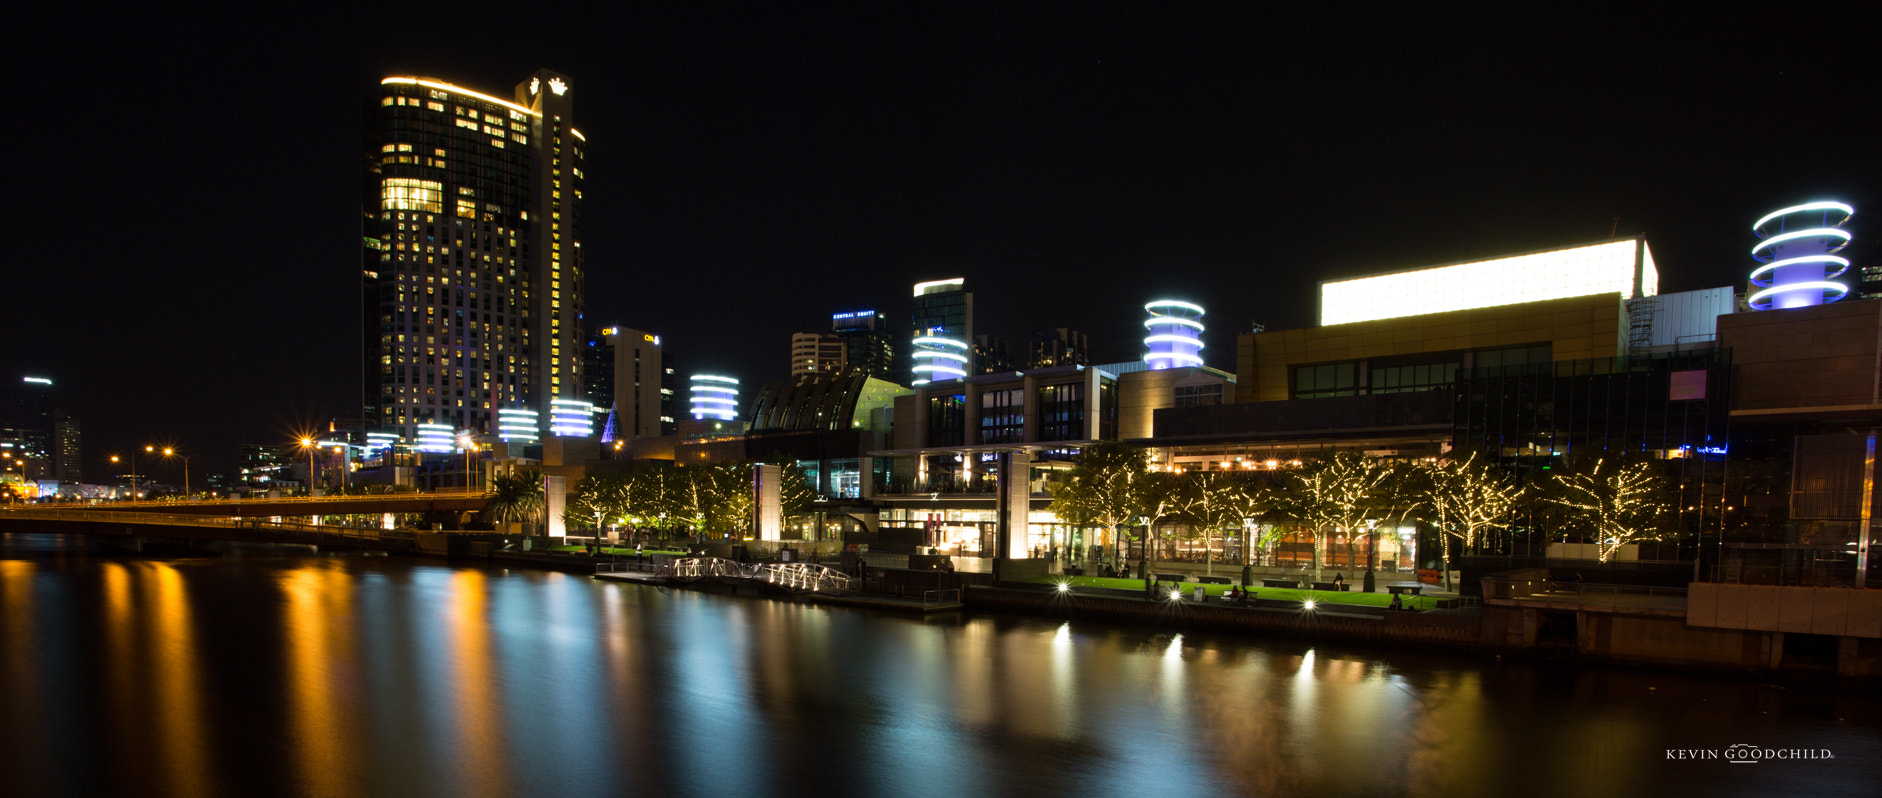 Photograph Night at Crown by Kevin Goodchild on 500px